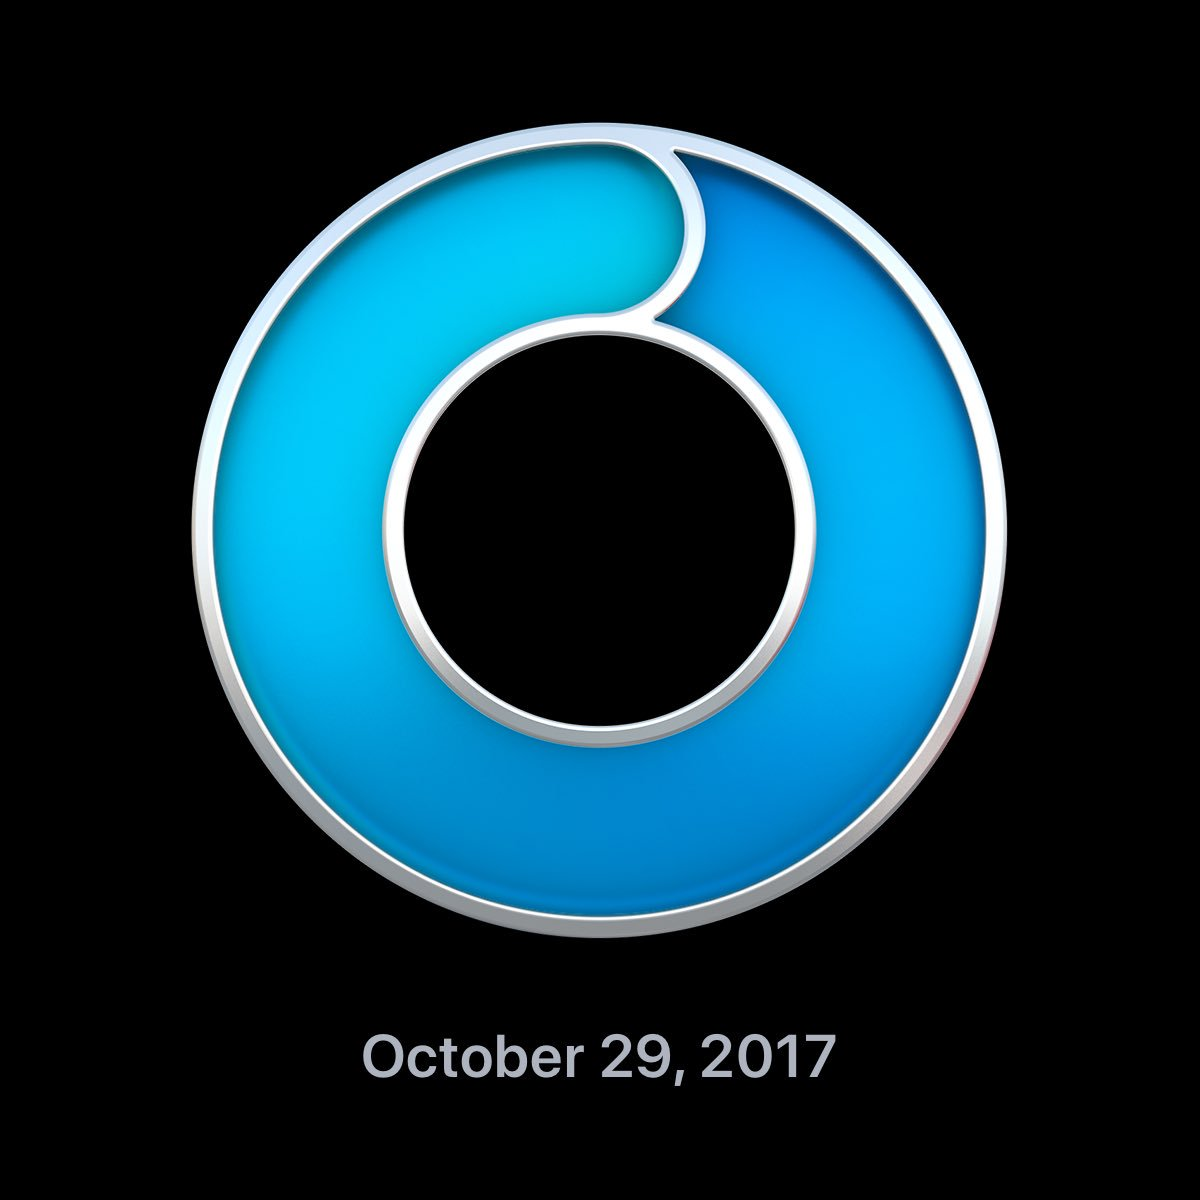 I ran outdoors for 7.01 MI with the Workout app on my #AppleWatch. Ready for @PHX10K !